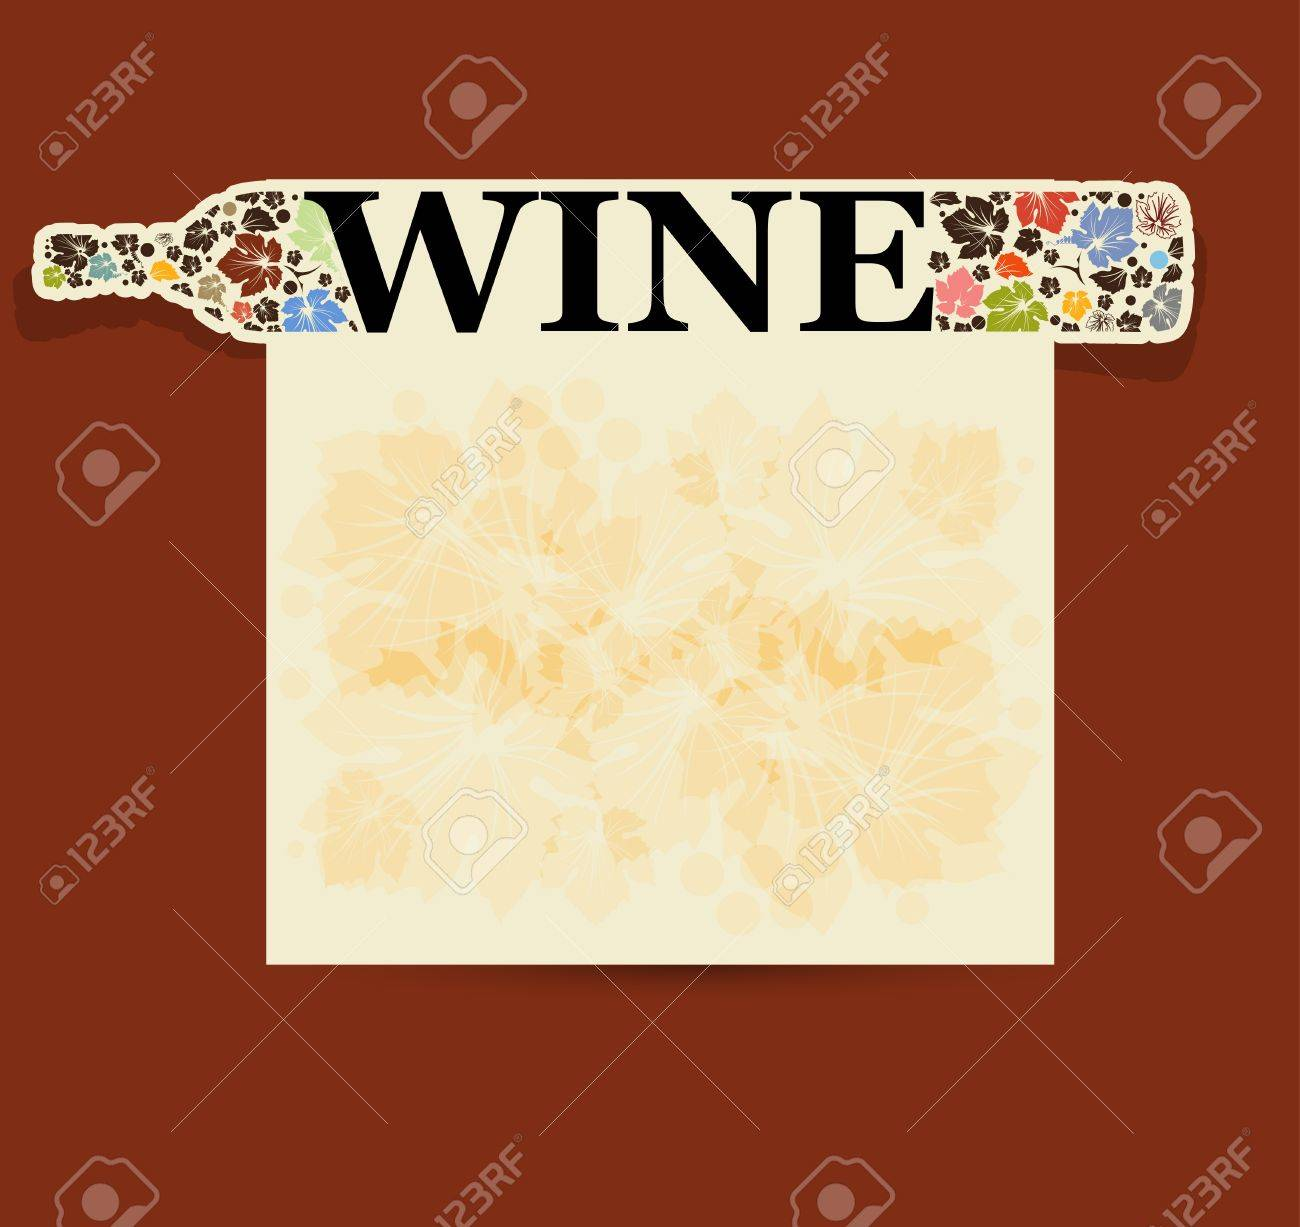 abstract drink background alcohol wine bottle Stock Vector - 15550770